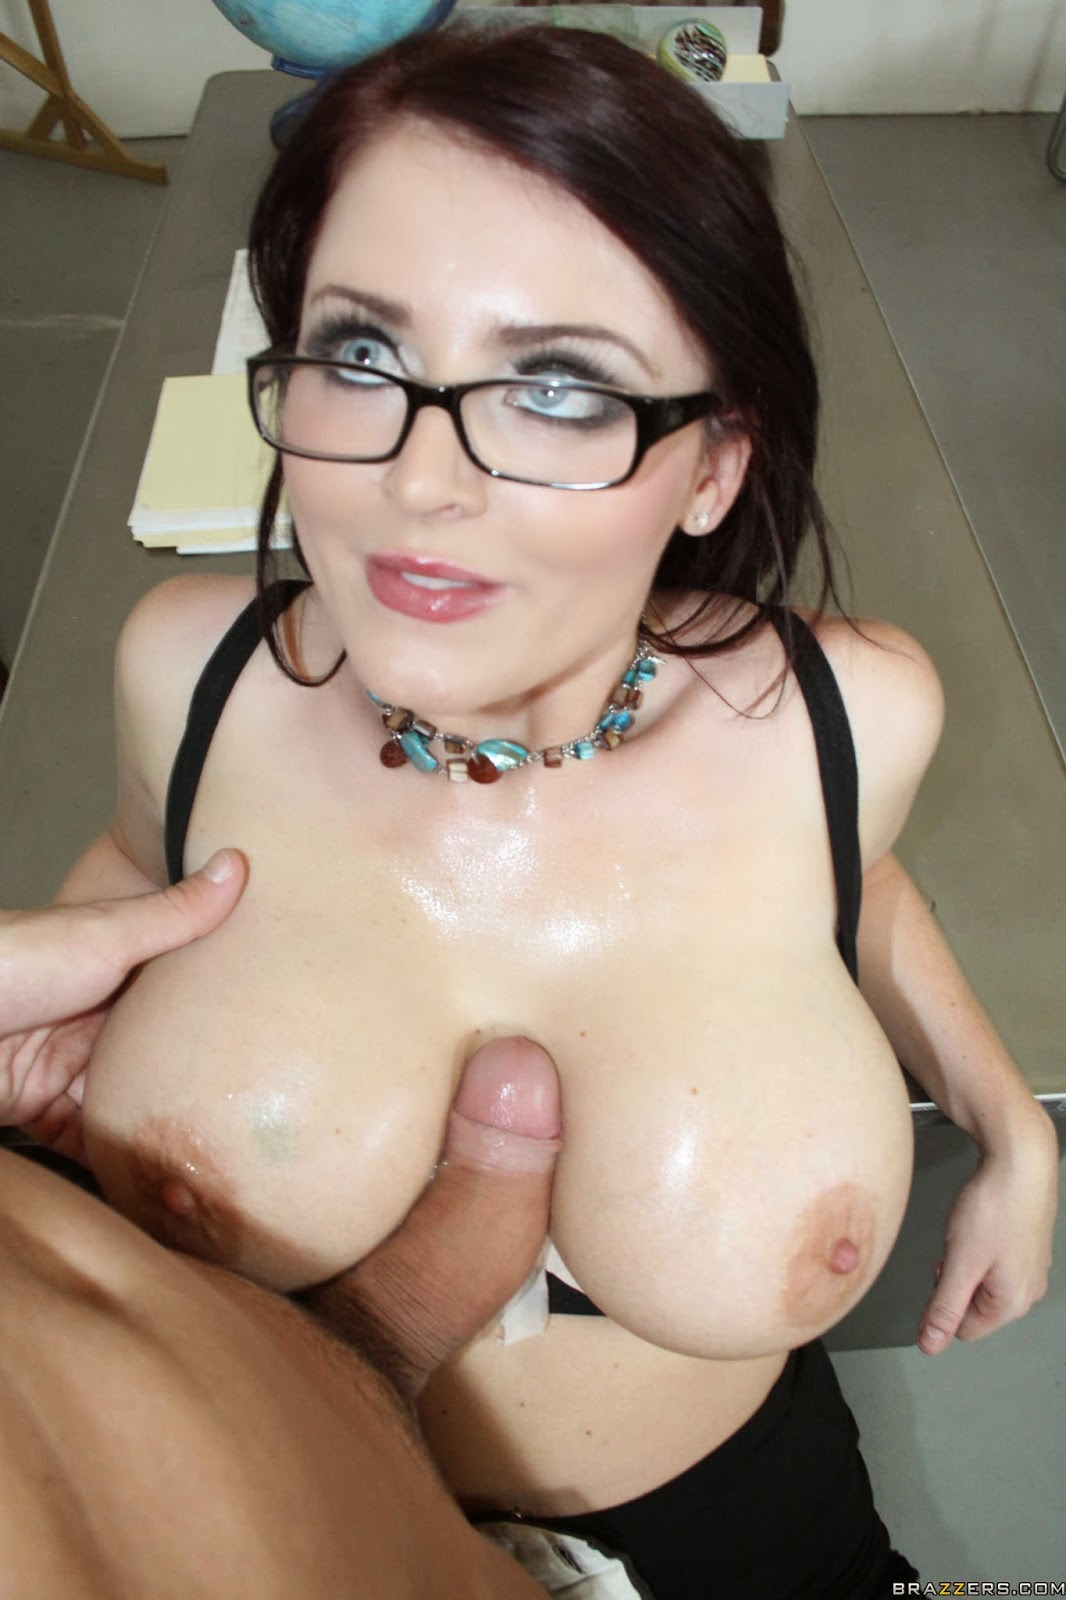 Webcams 2014 milf with l cups Part 5 6